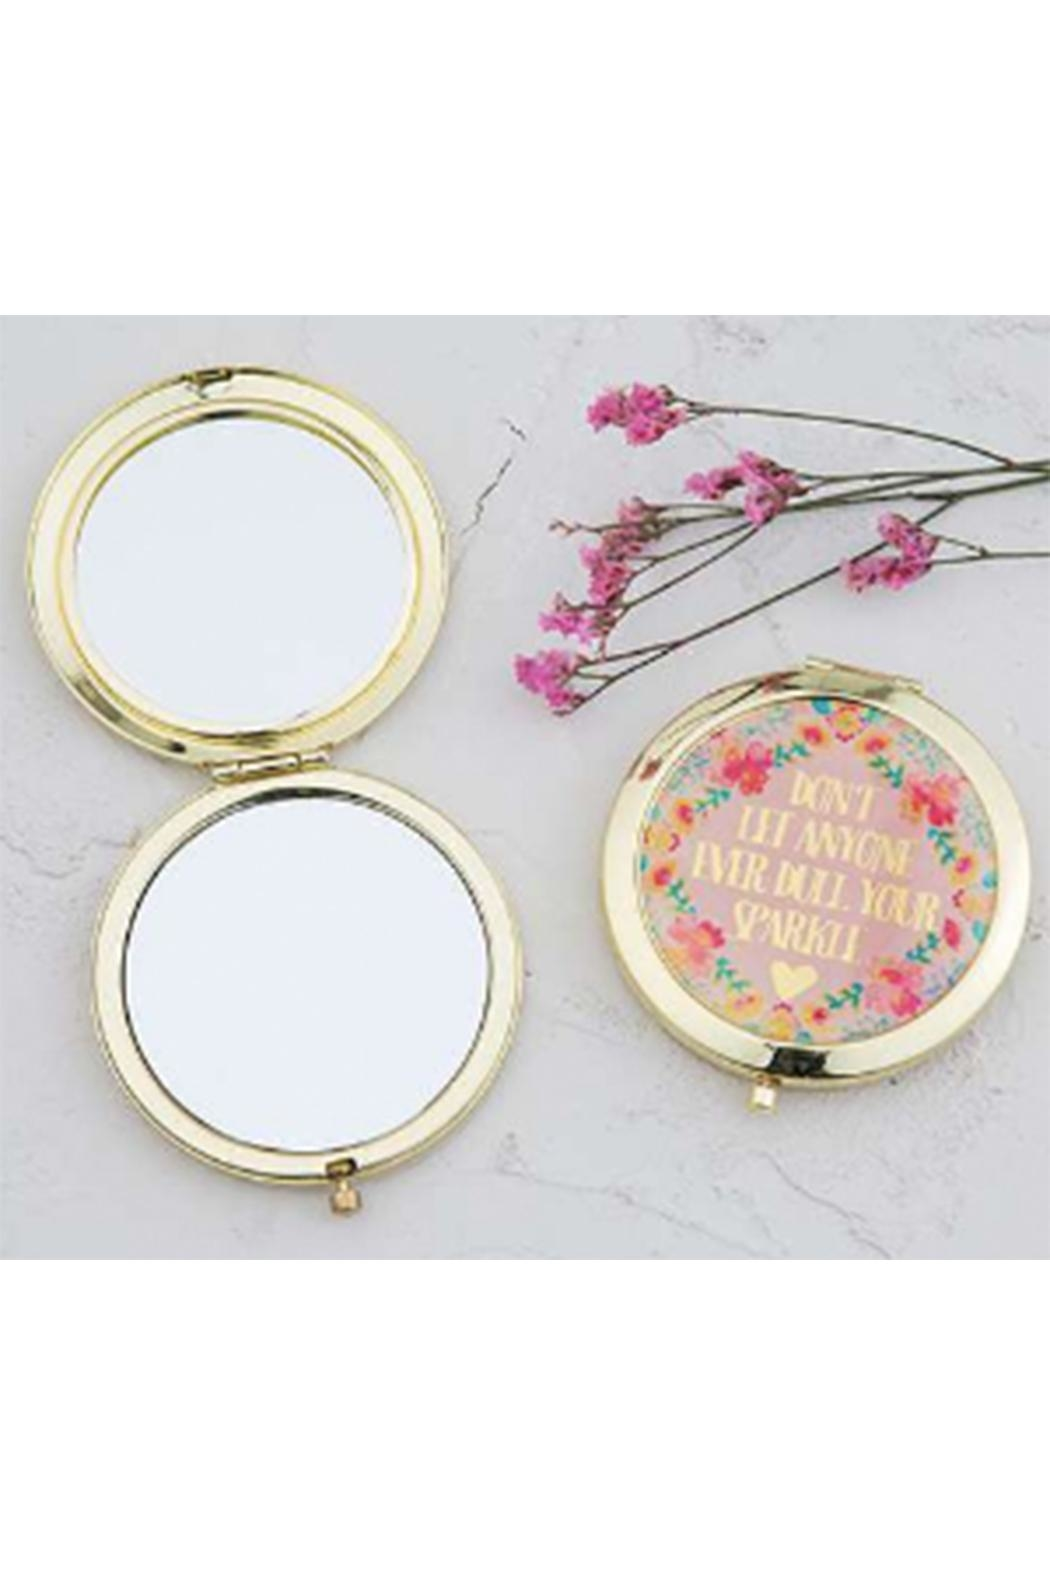 Natural Life Dull-Your-Sparkle Compact Mirror - Main Image